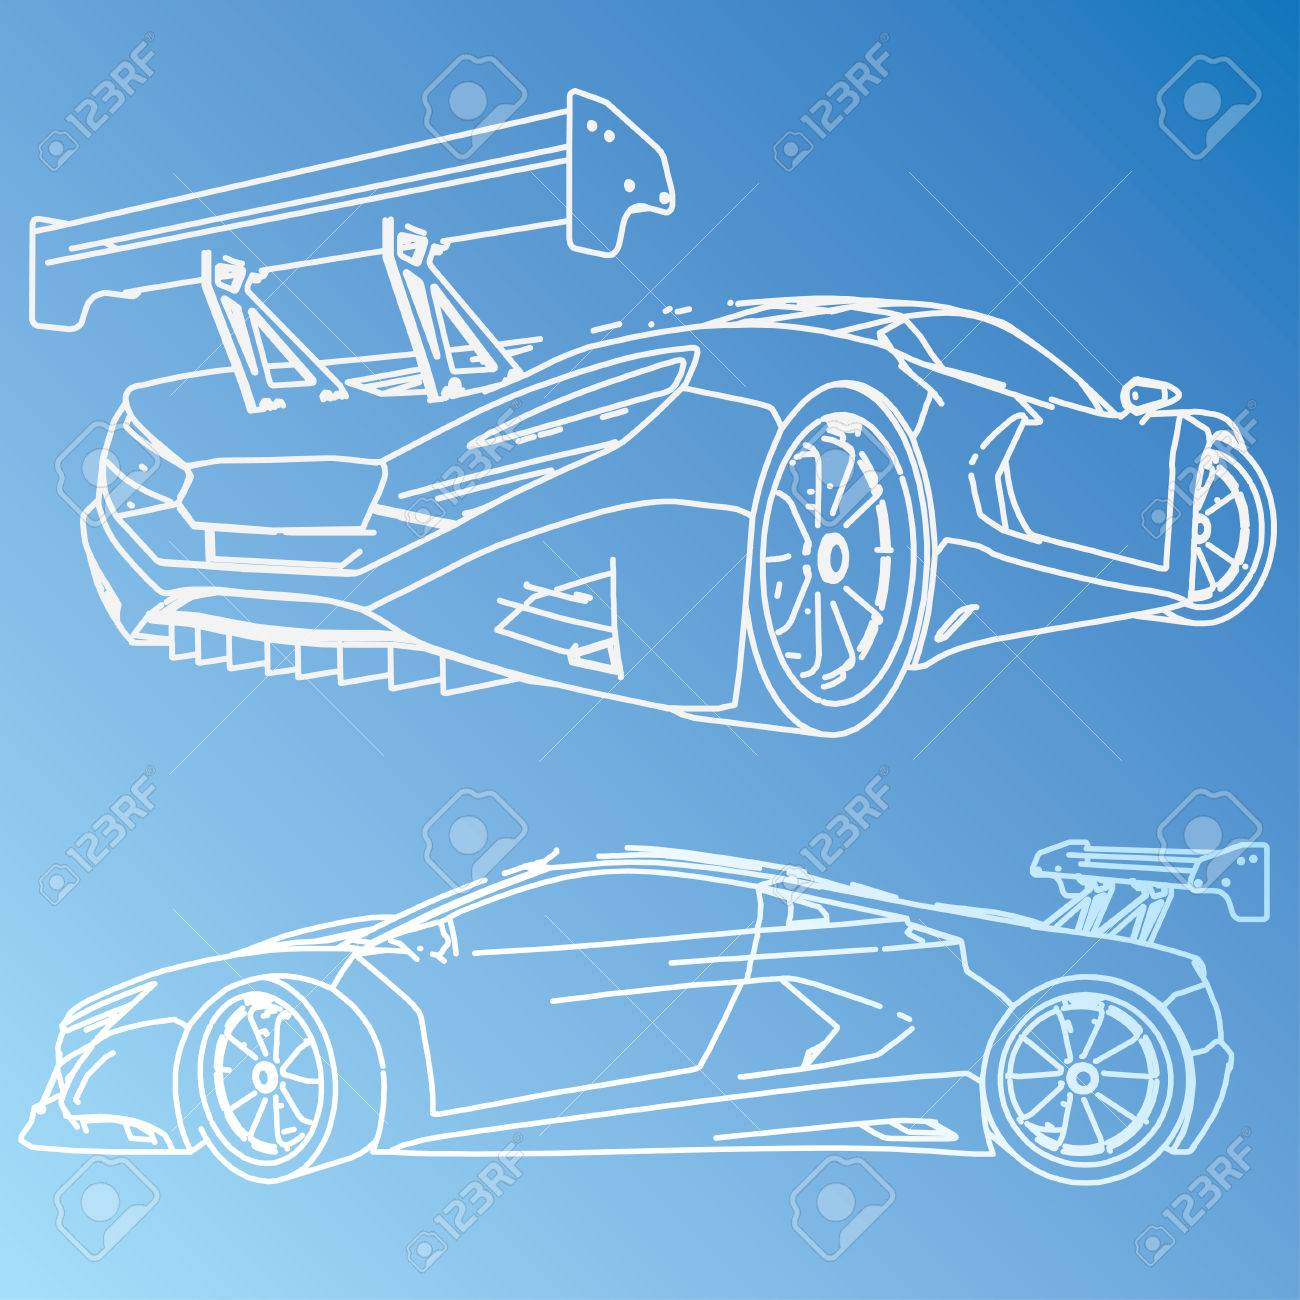 Sports car sketch blueprint royalty free cliparts vectors and sports car sketch blueprint stock vector 29228927 malvernweather Images